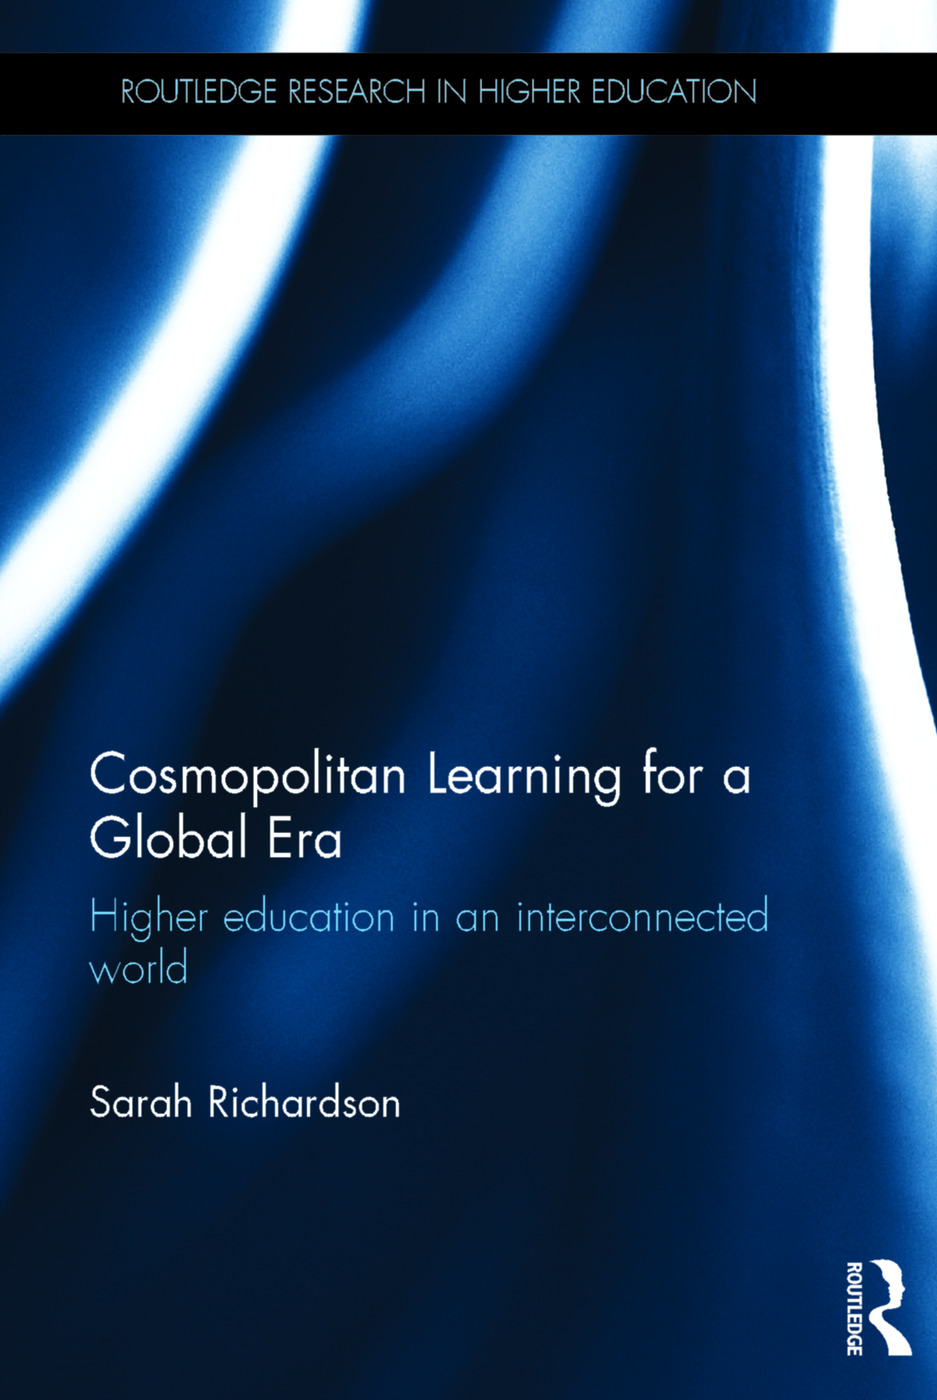 Cosmopolitan Learning for a Global Era: Higher education in an interconnected world book cover